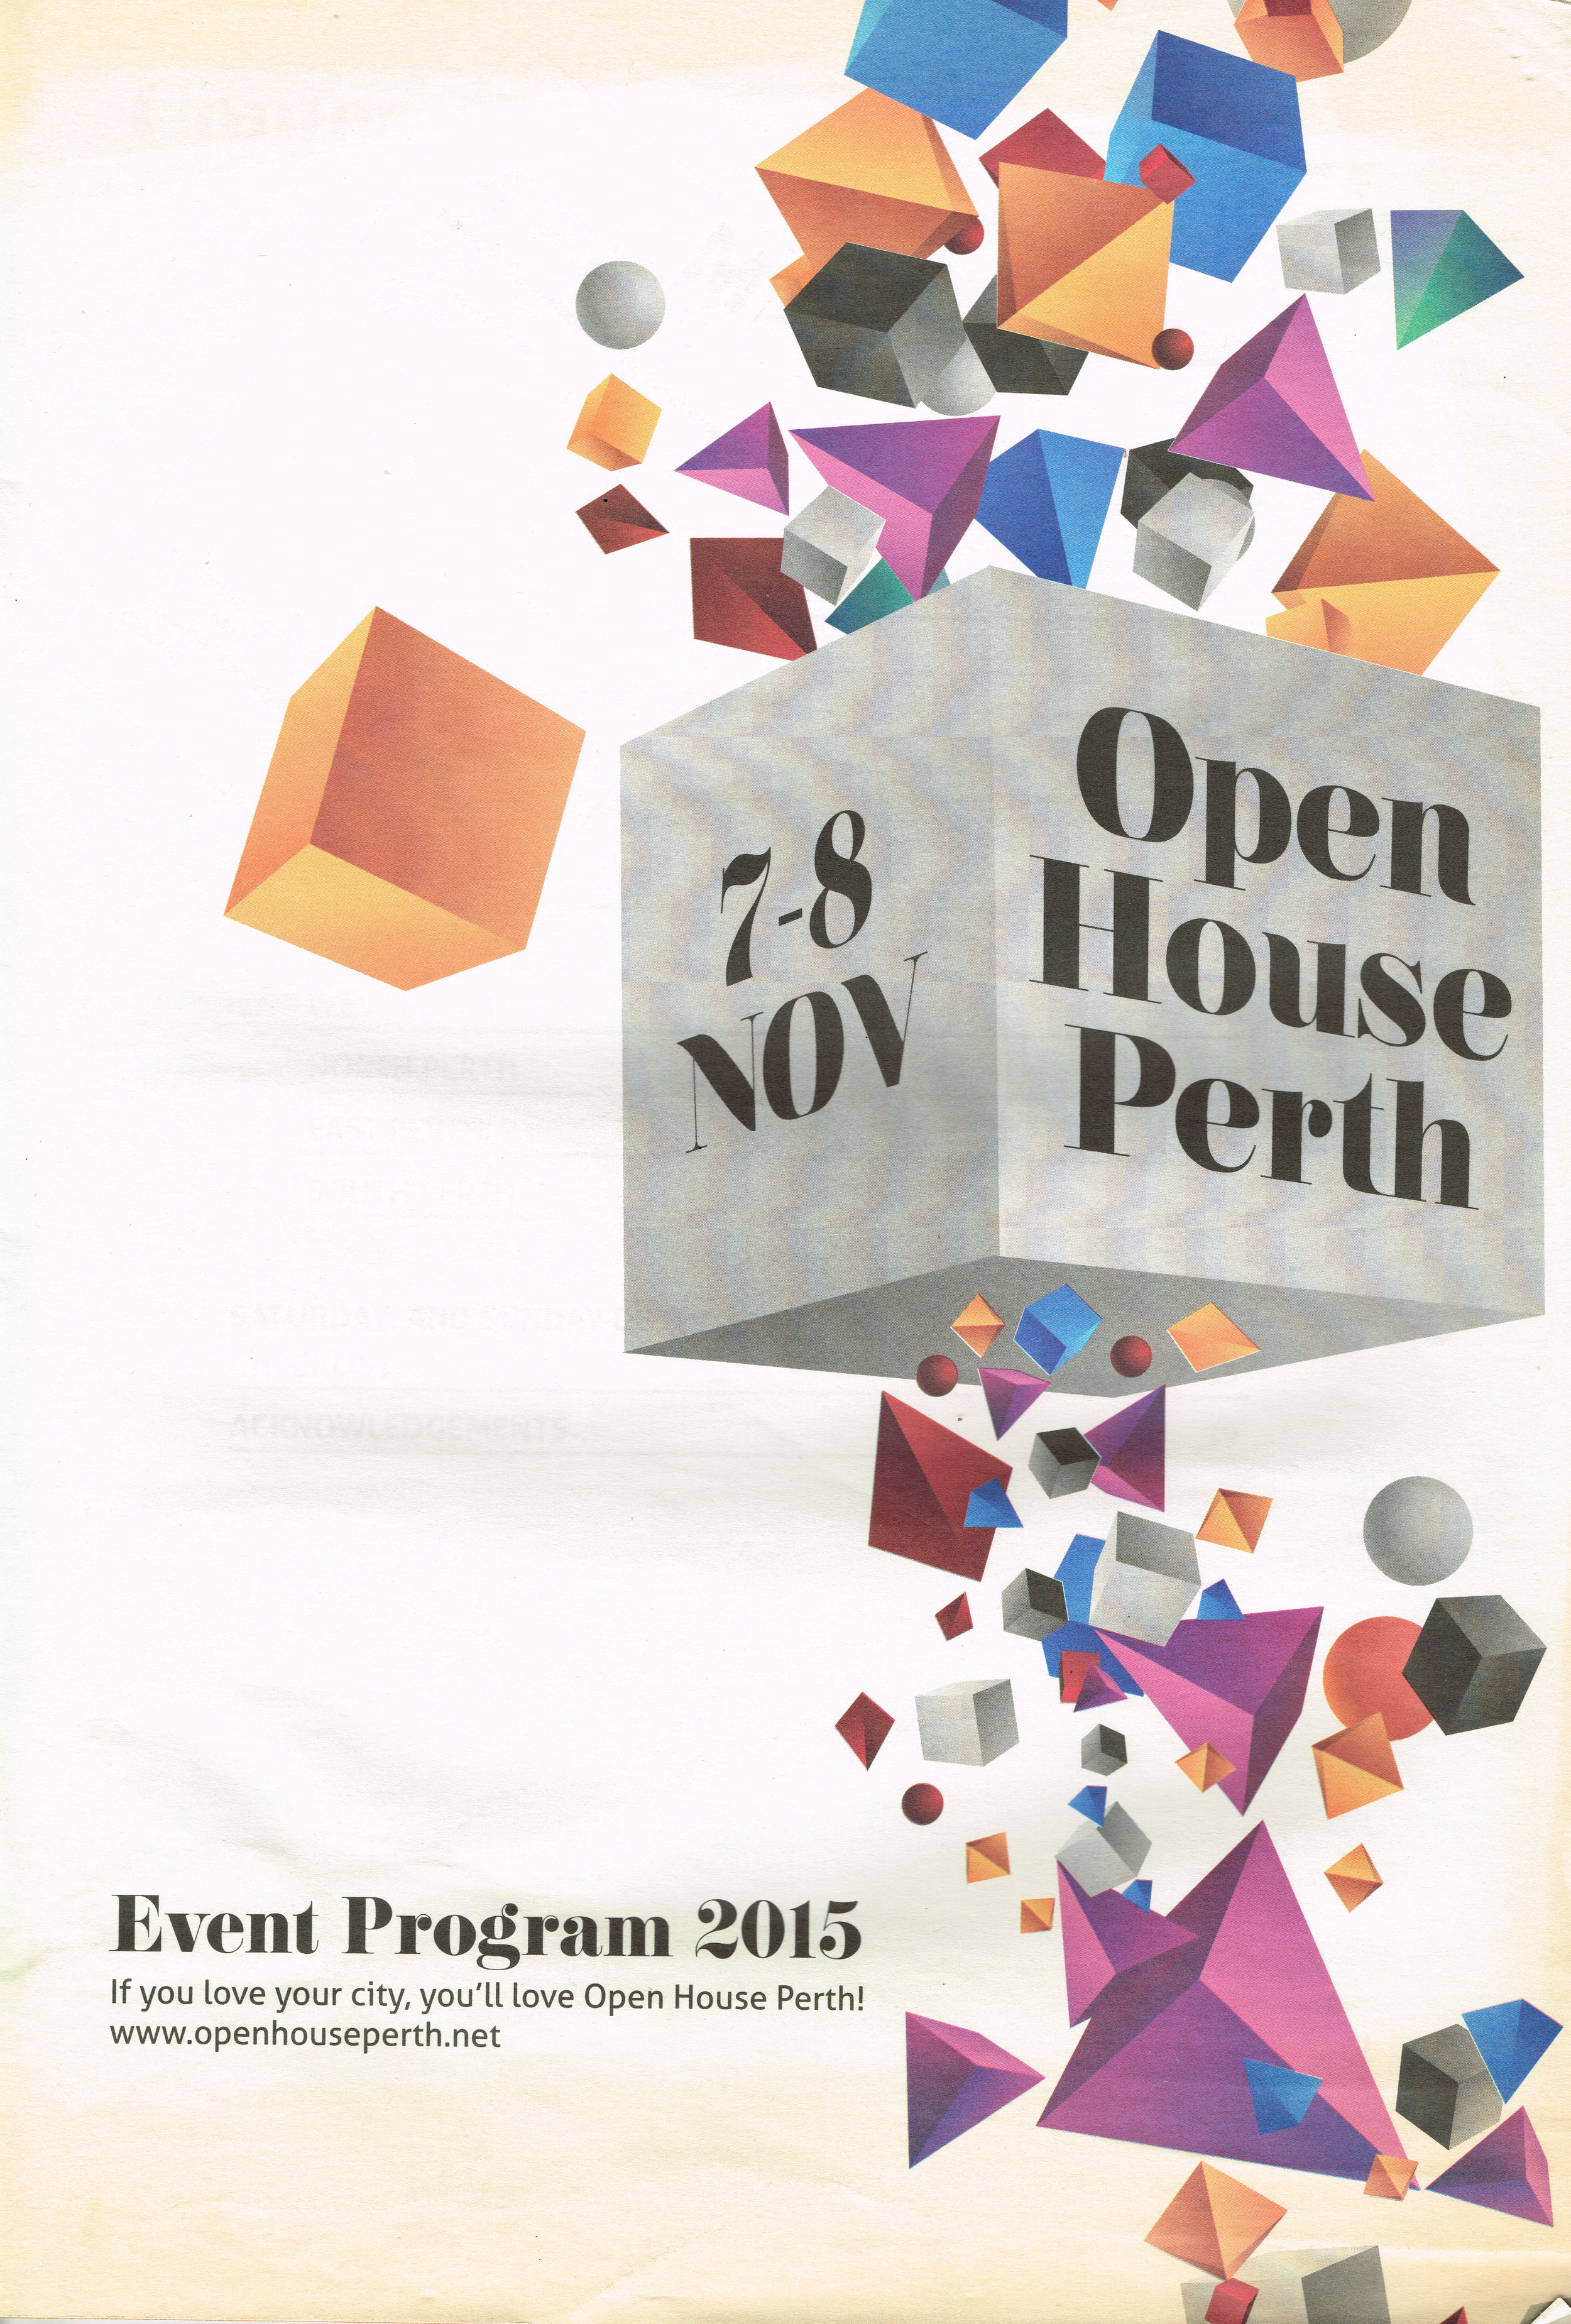 Open House Perth 7-8 Nov : Event Program 2015  Open House Perth